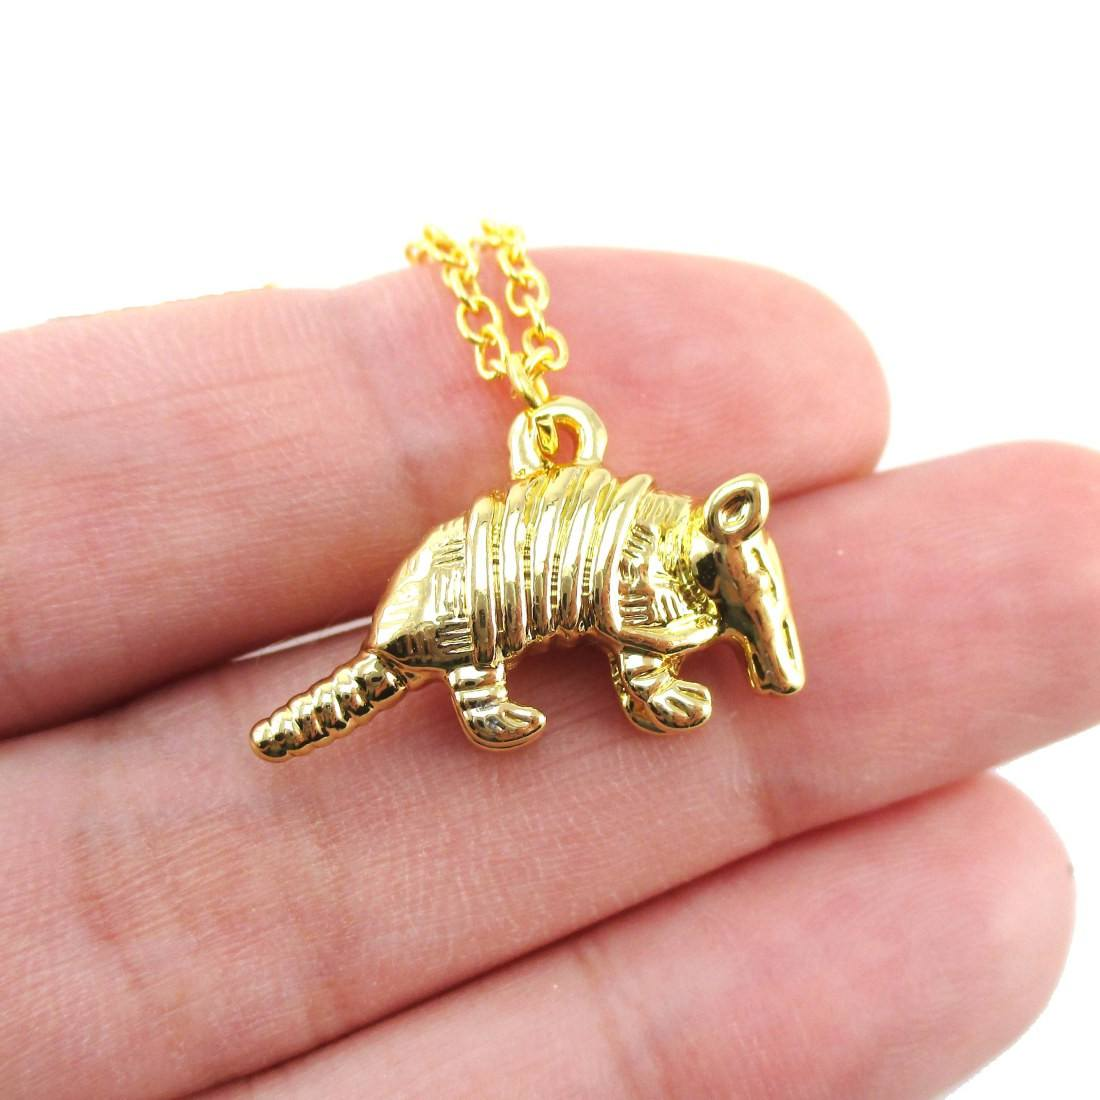 3D Armadillo Shaped Pendant Necklace in Gold | DOTOLY